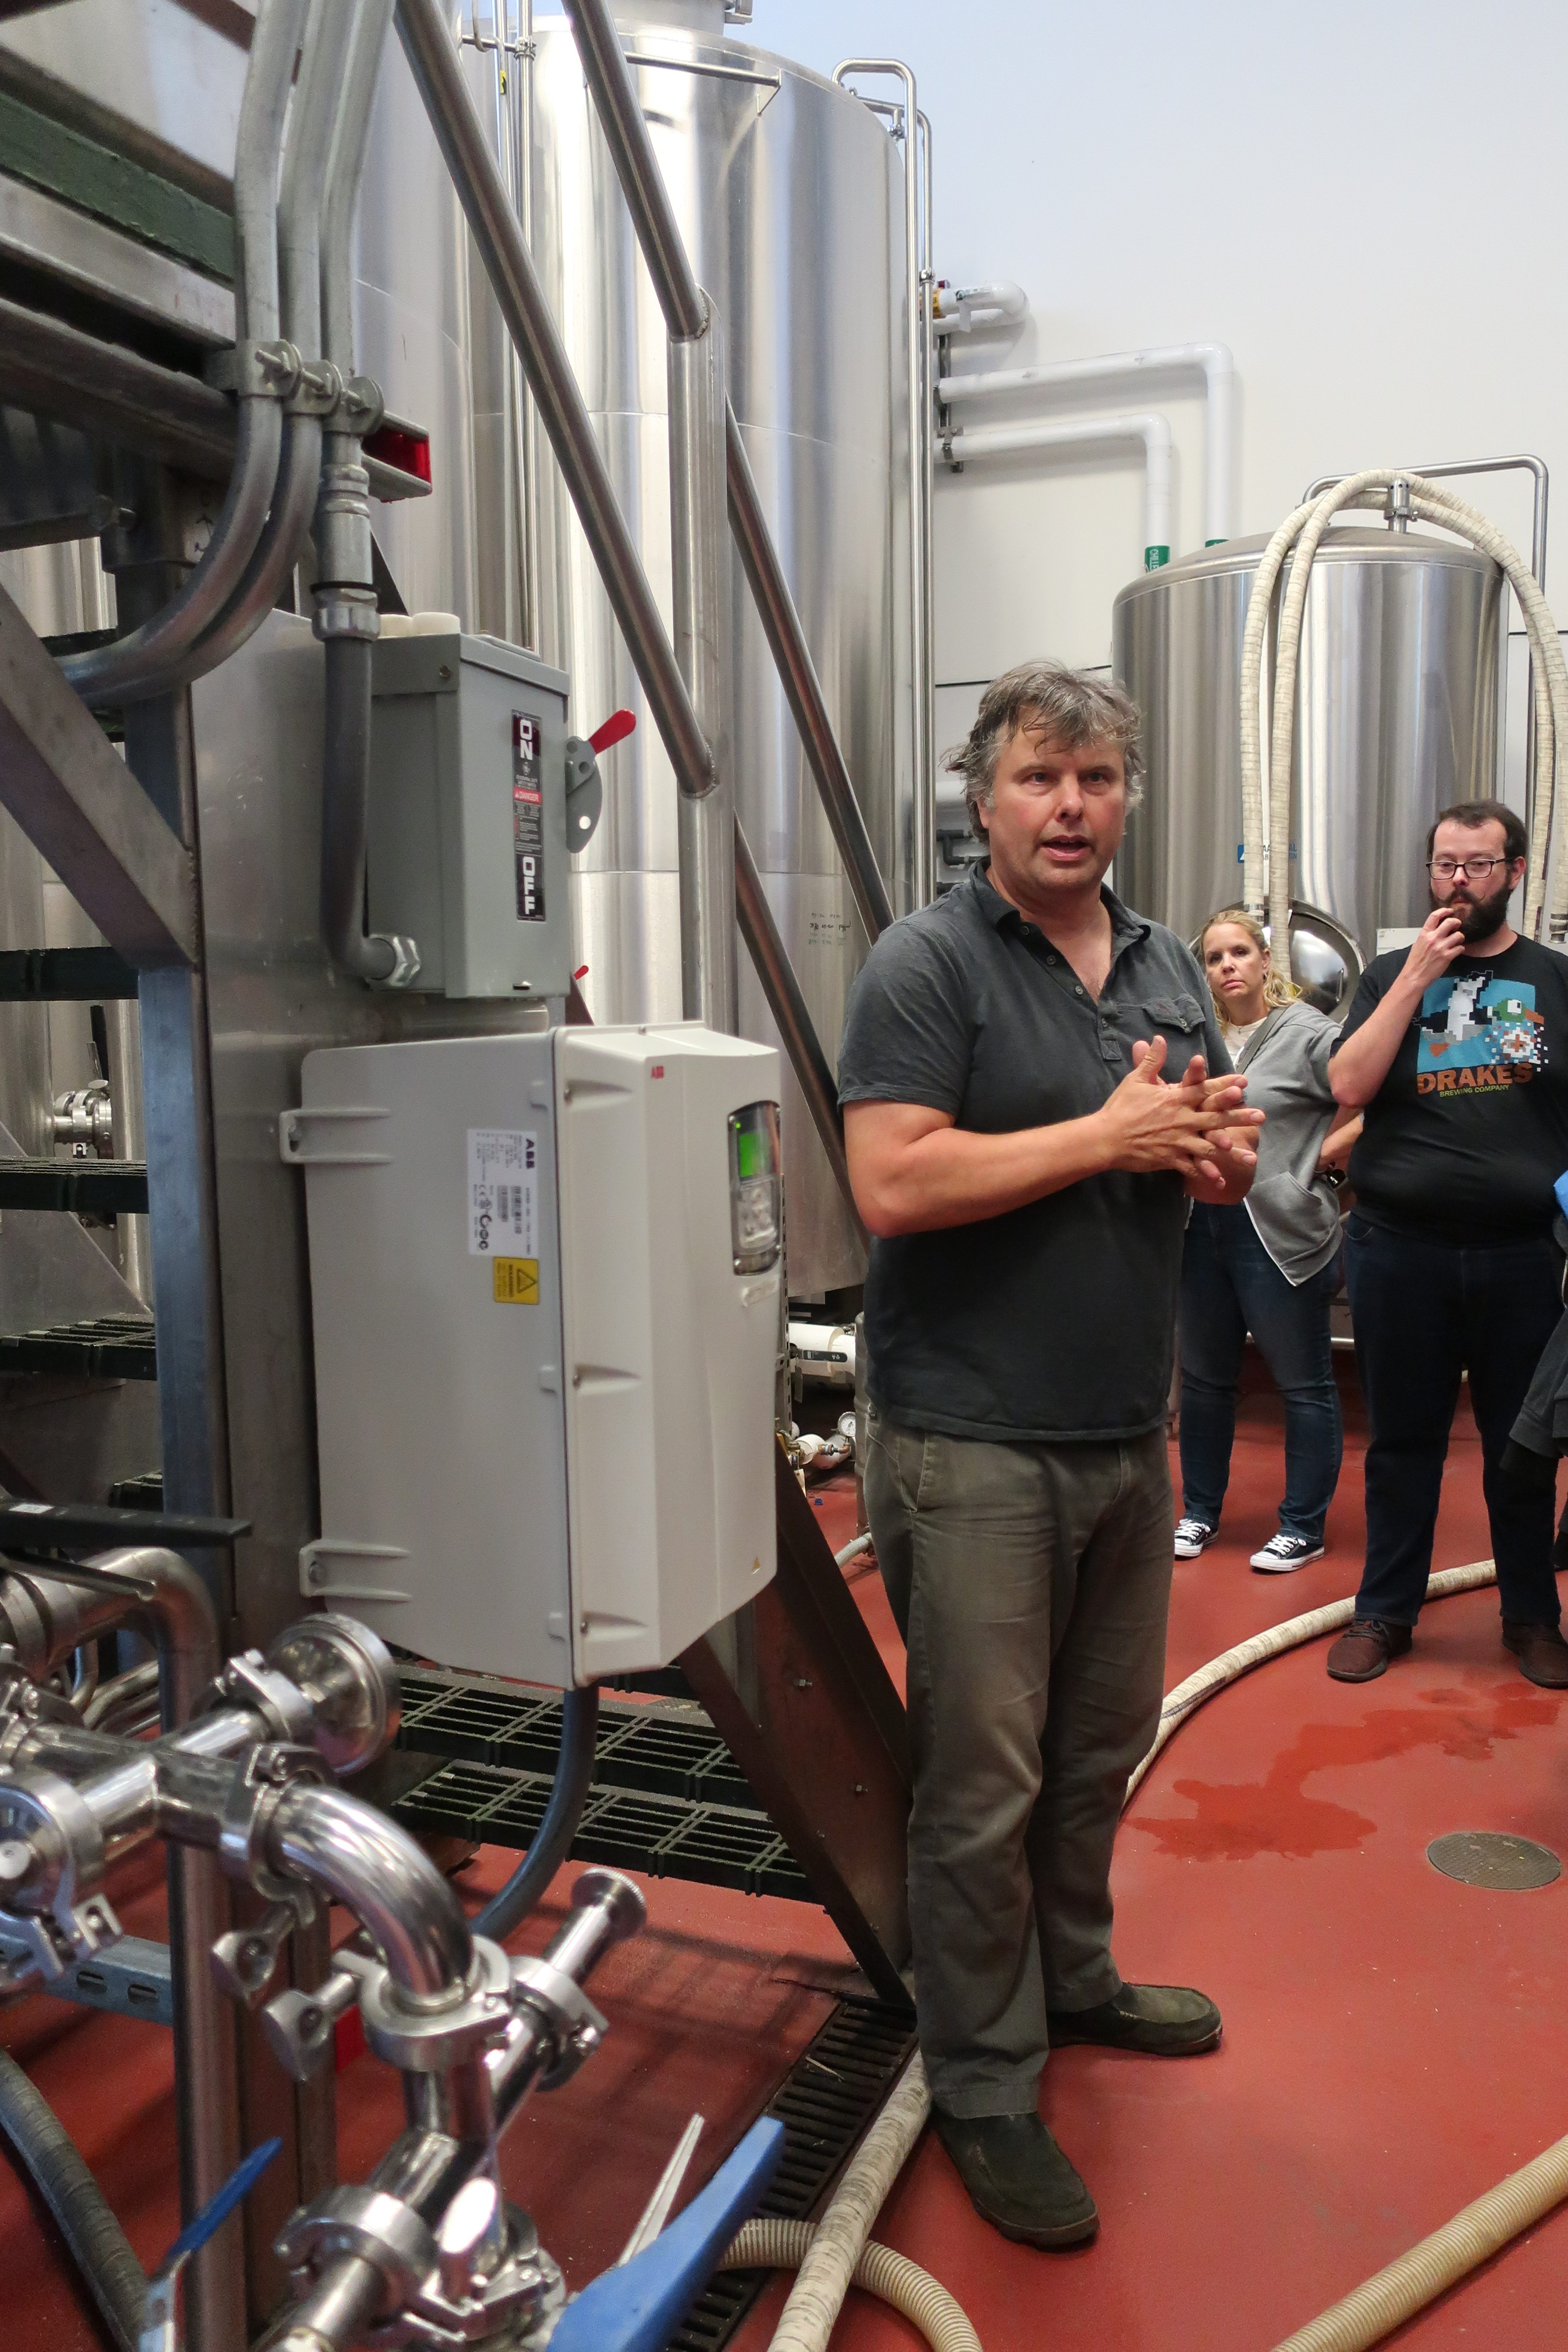 Christian Krogstad, founder of House Spirits giving a tour while discussing the brewing process to make Westward Whiskey.